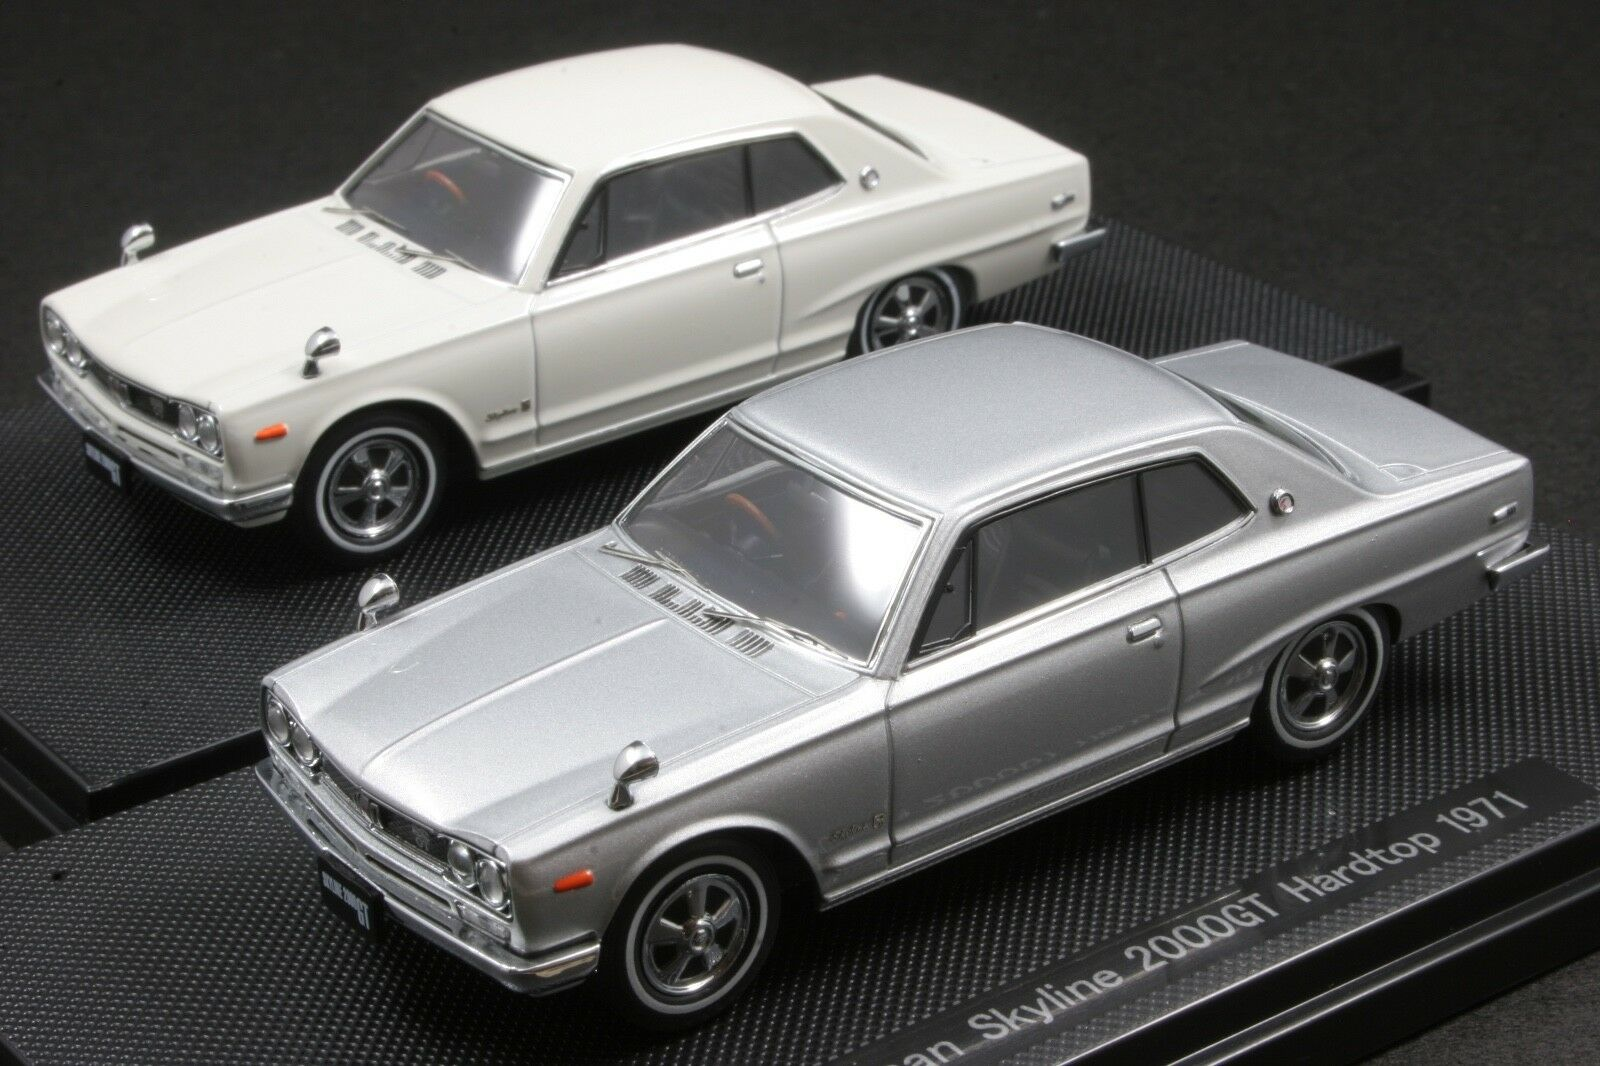 EBBRO 1 43 SCALE SCALE SCALE 1971 NISSAN SKYLINE 2000GT HARD TOP KPGC10 DIE CAST MODEL CAR 42b9b8